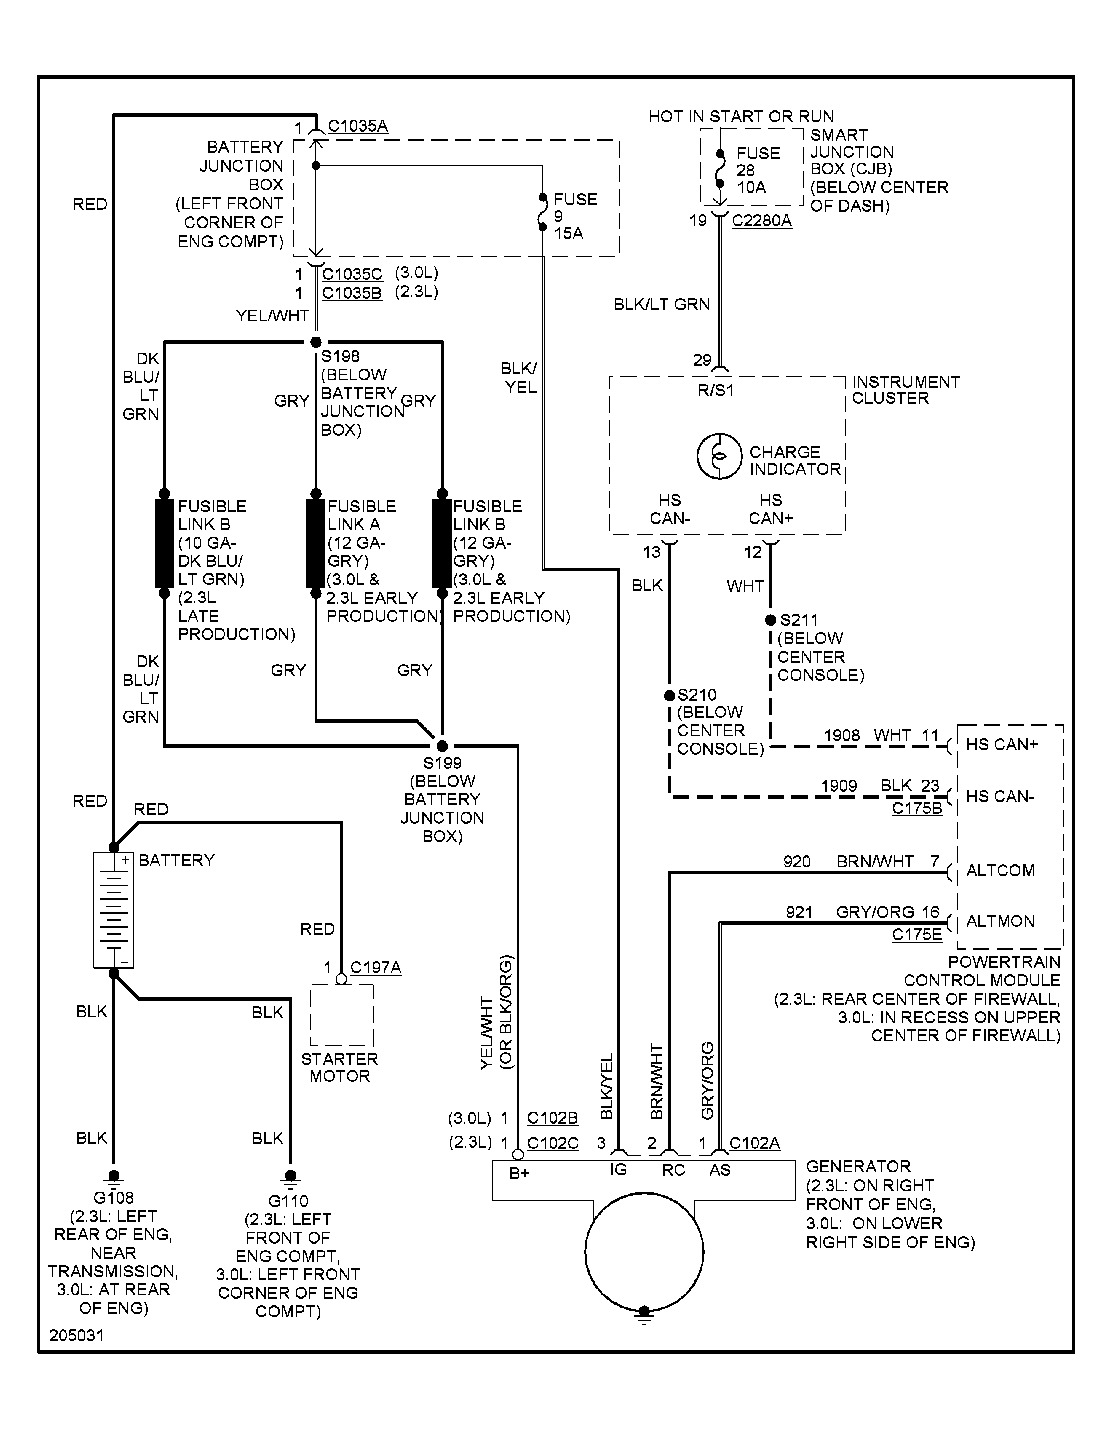 2001 Ford Escape Alternator Fuse Diagram